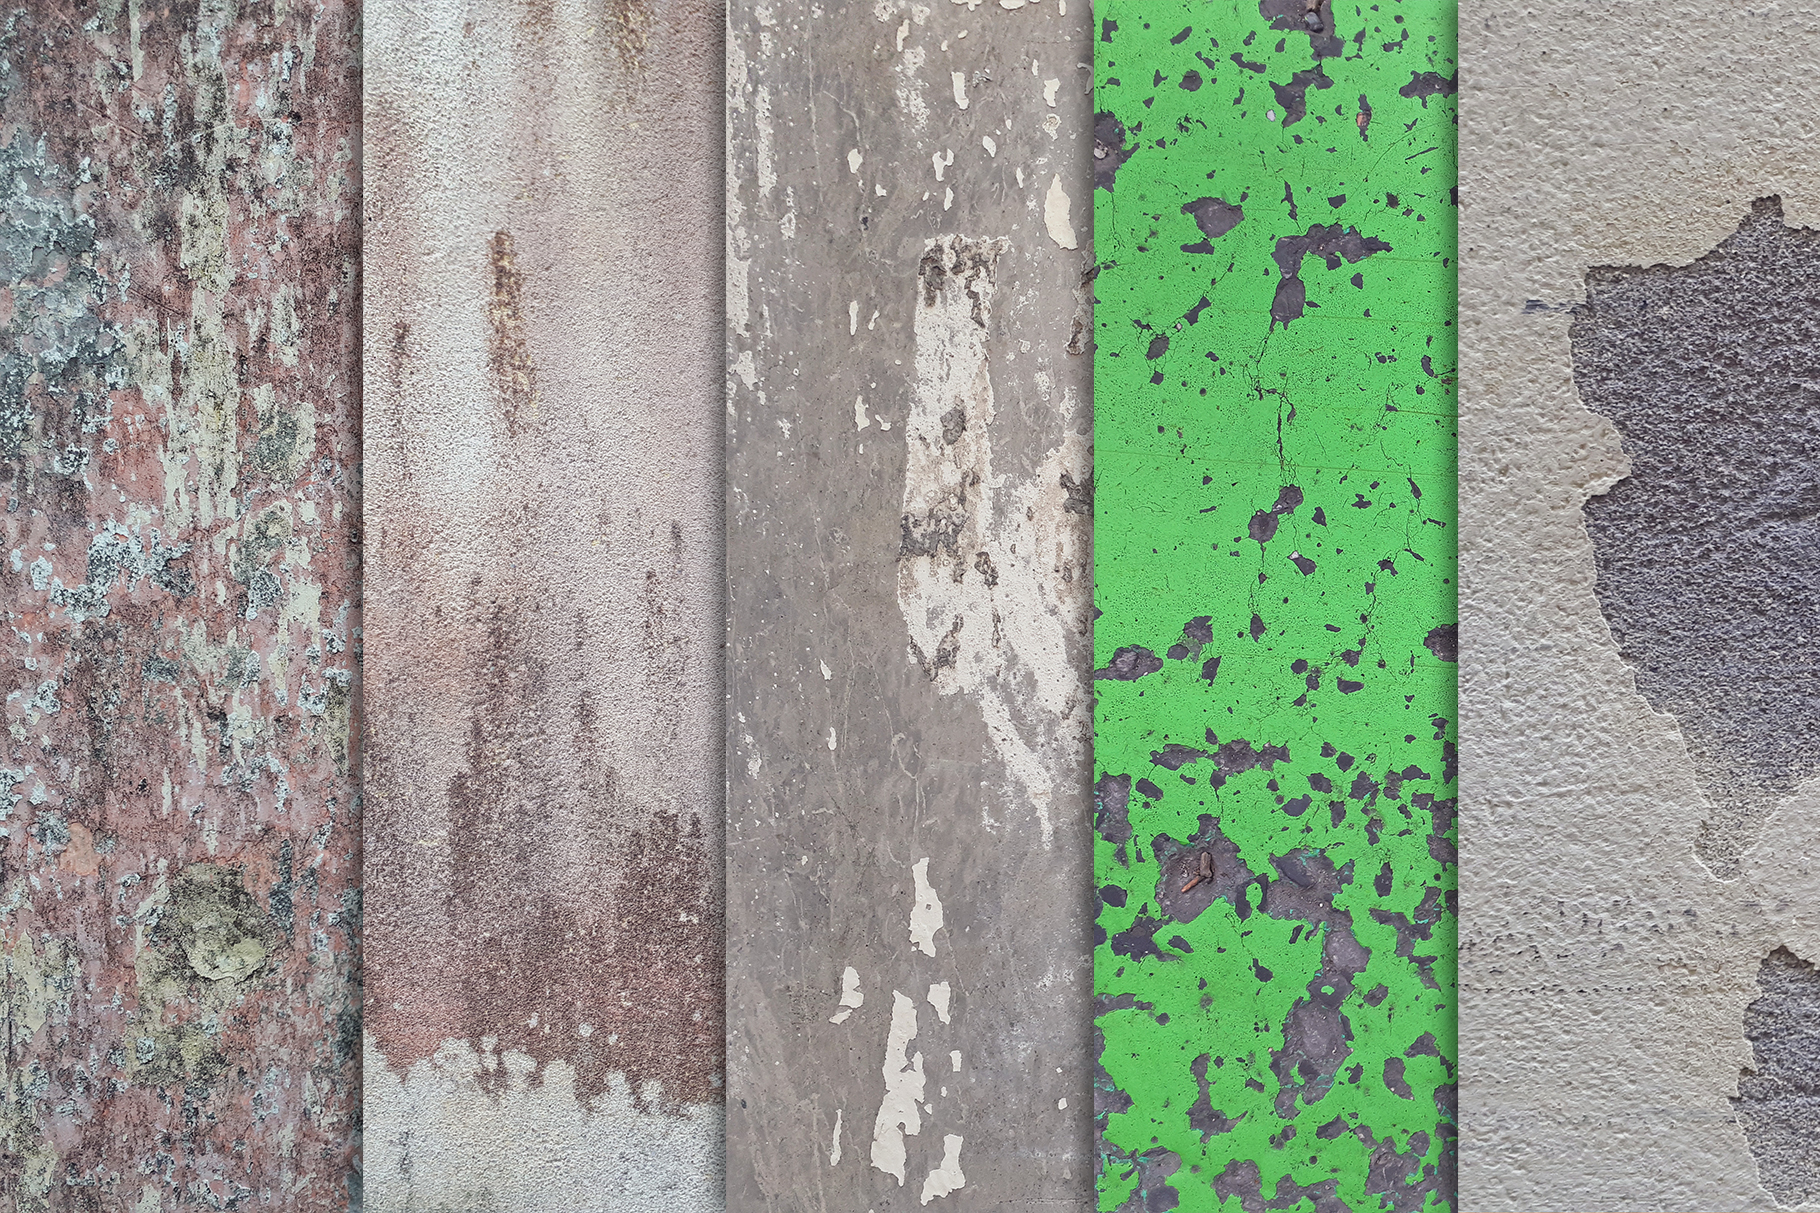 Grunge Wall Textures x10 vol2 example image 2